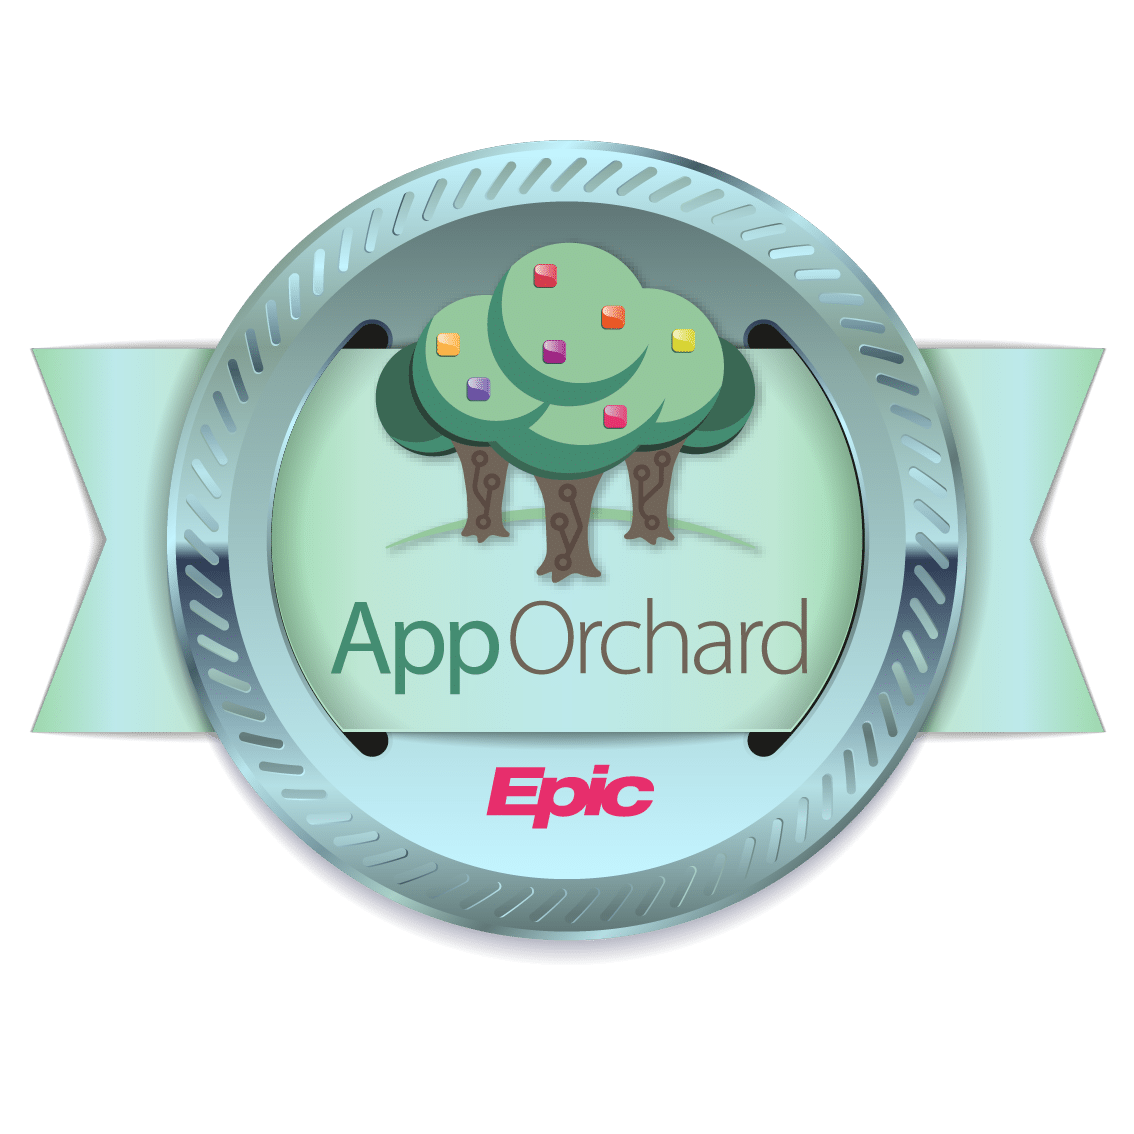 UniPrint Infinity App Orchard Badge